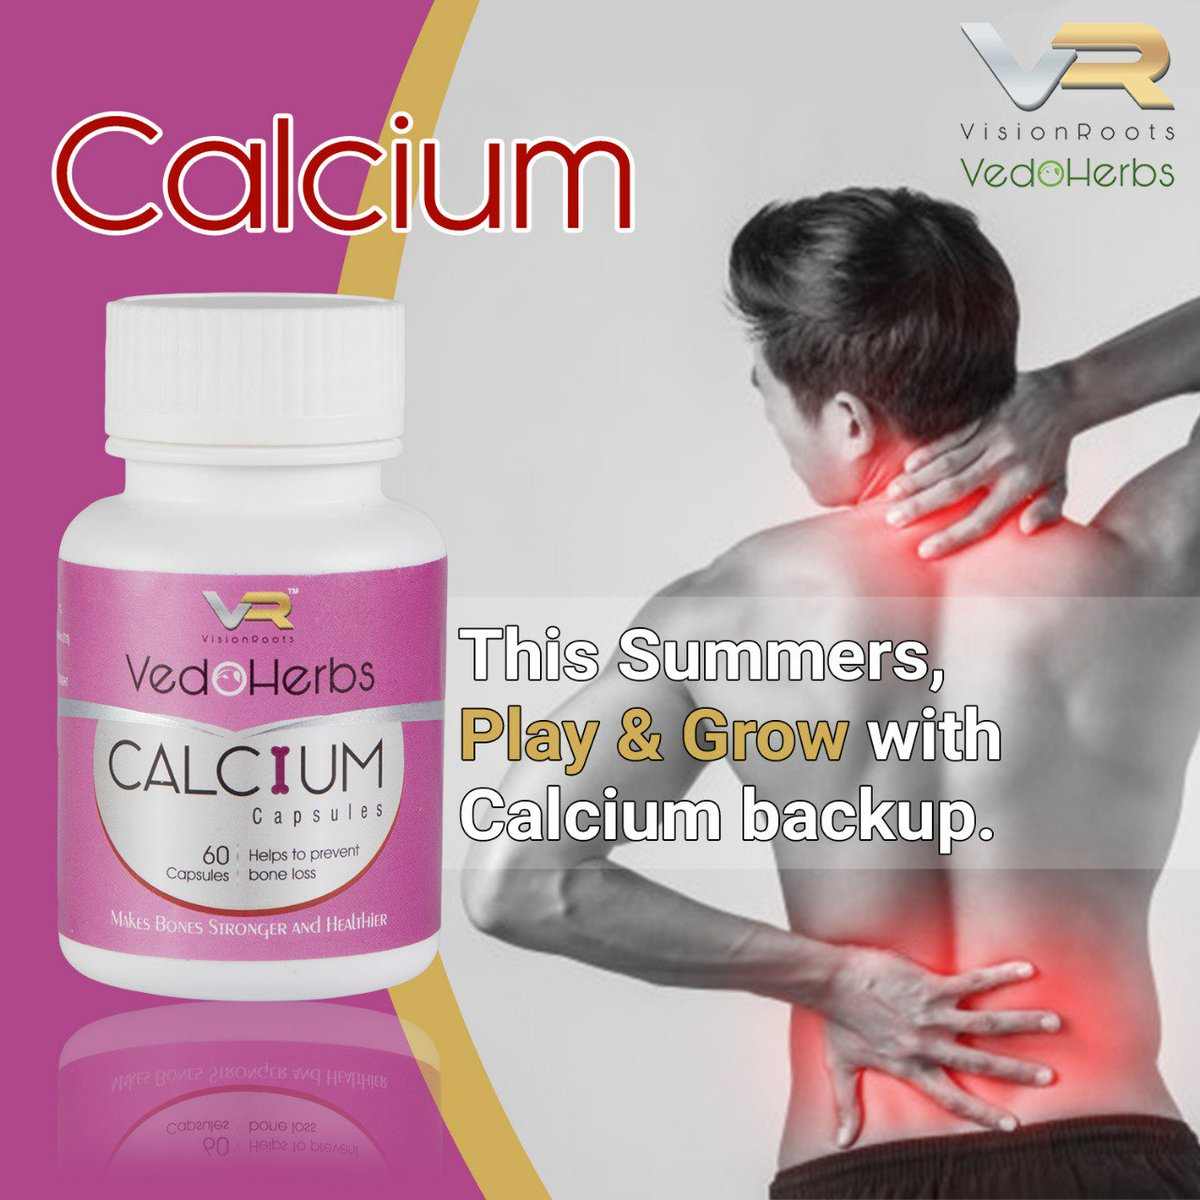 Don't worry about your calcium intake and enjoy this summers with our Calcium Capsule. . . Use VisionRoots products & feel the difference naturally. . . Contact Us - http://www.visionroots.co.in  . . #visionroots #vedoherbs #calcium #calciumcapsules #summercare #summers